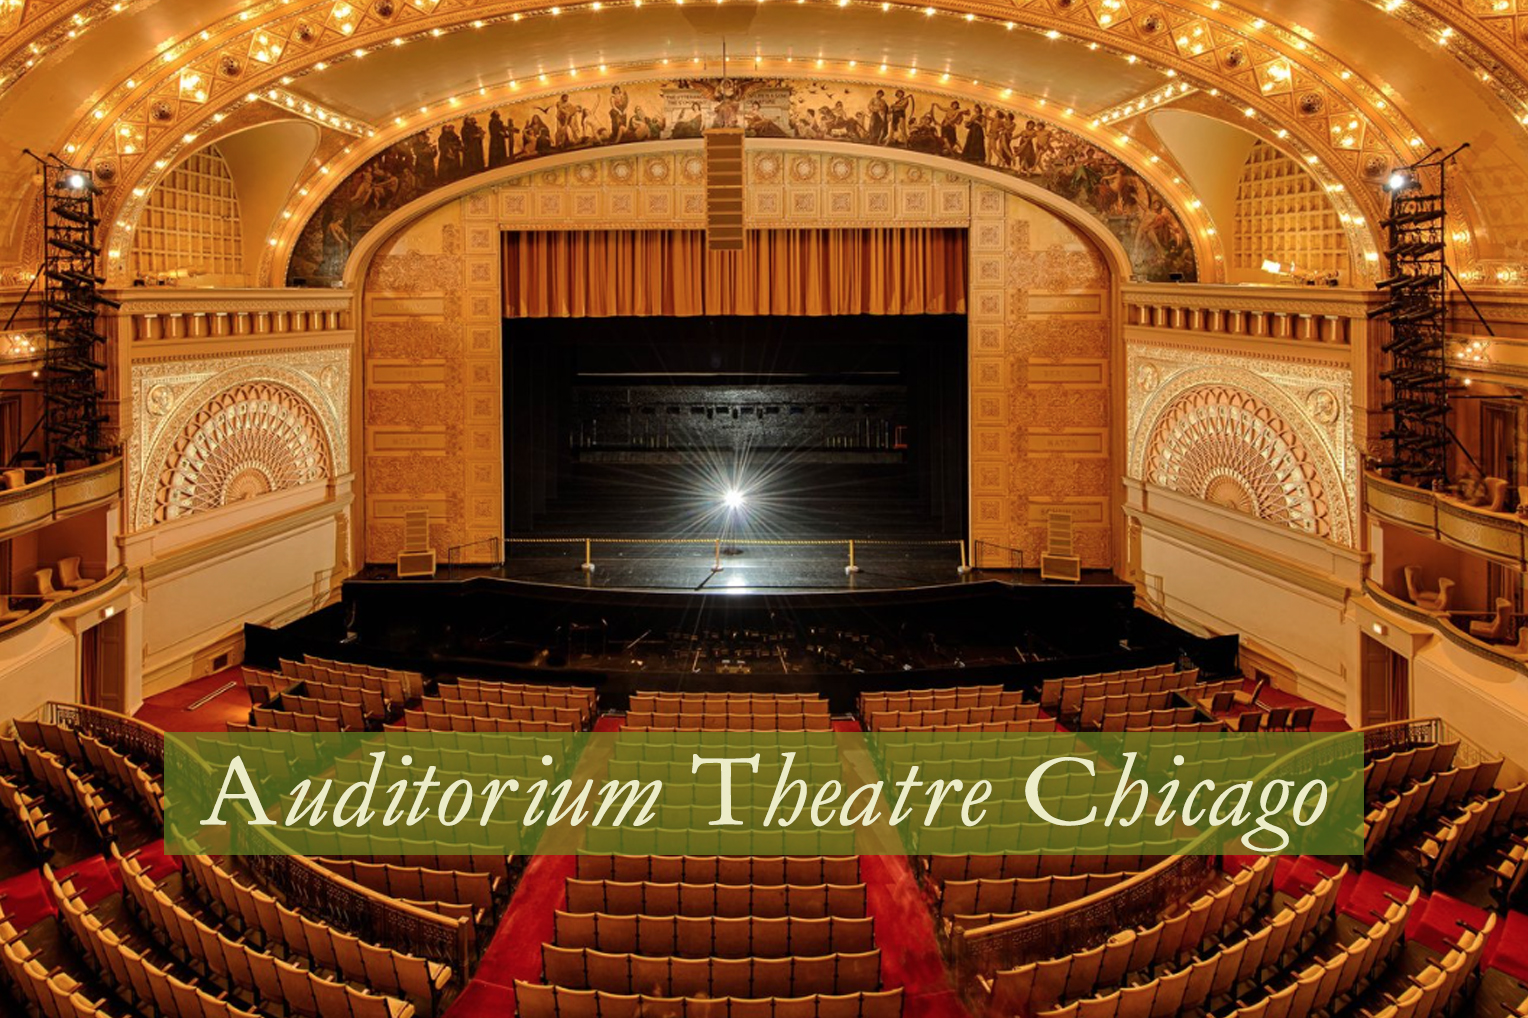 Auditorium Theatre Chicago.jpg